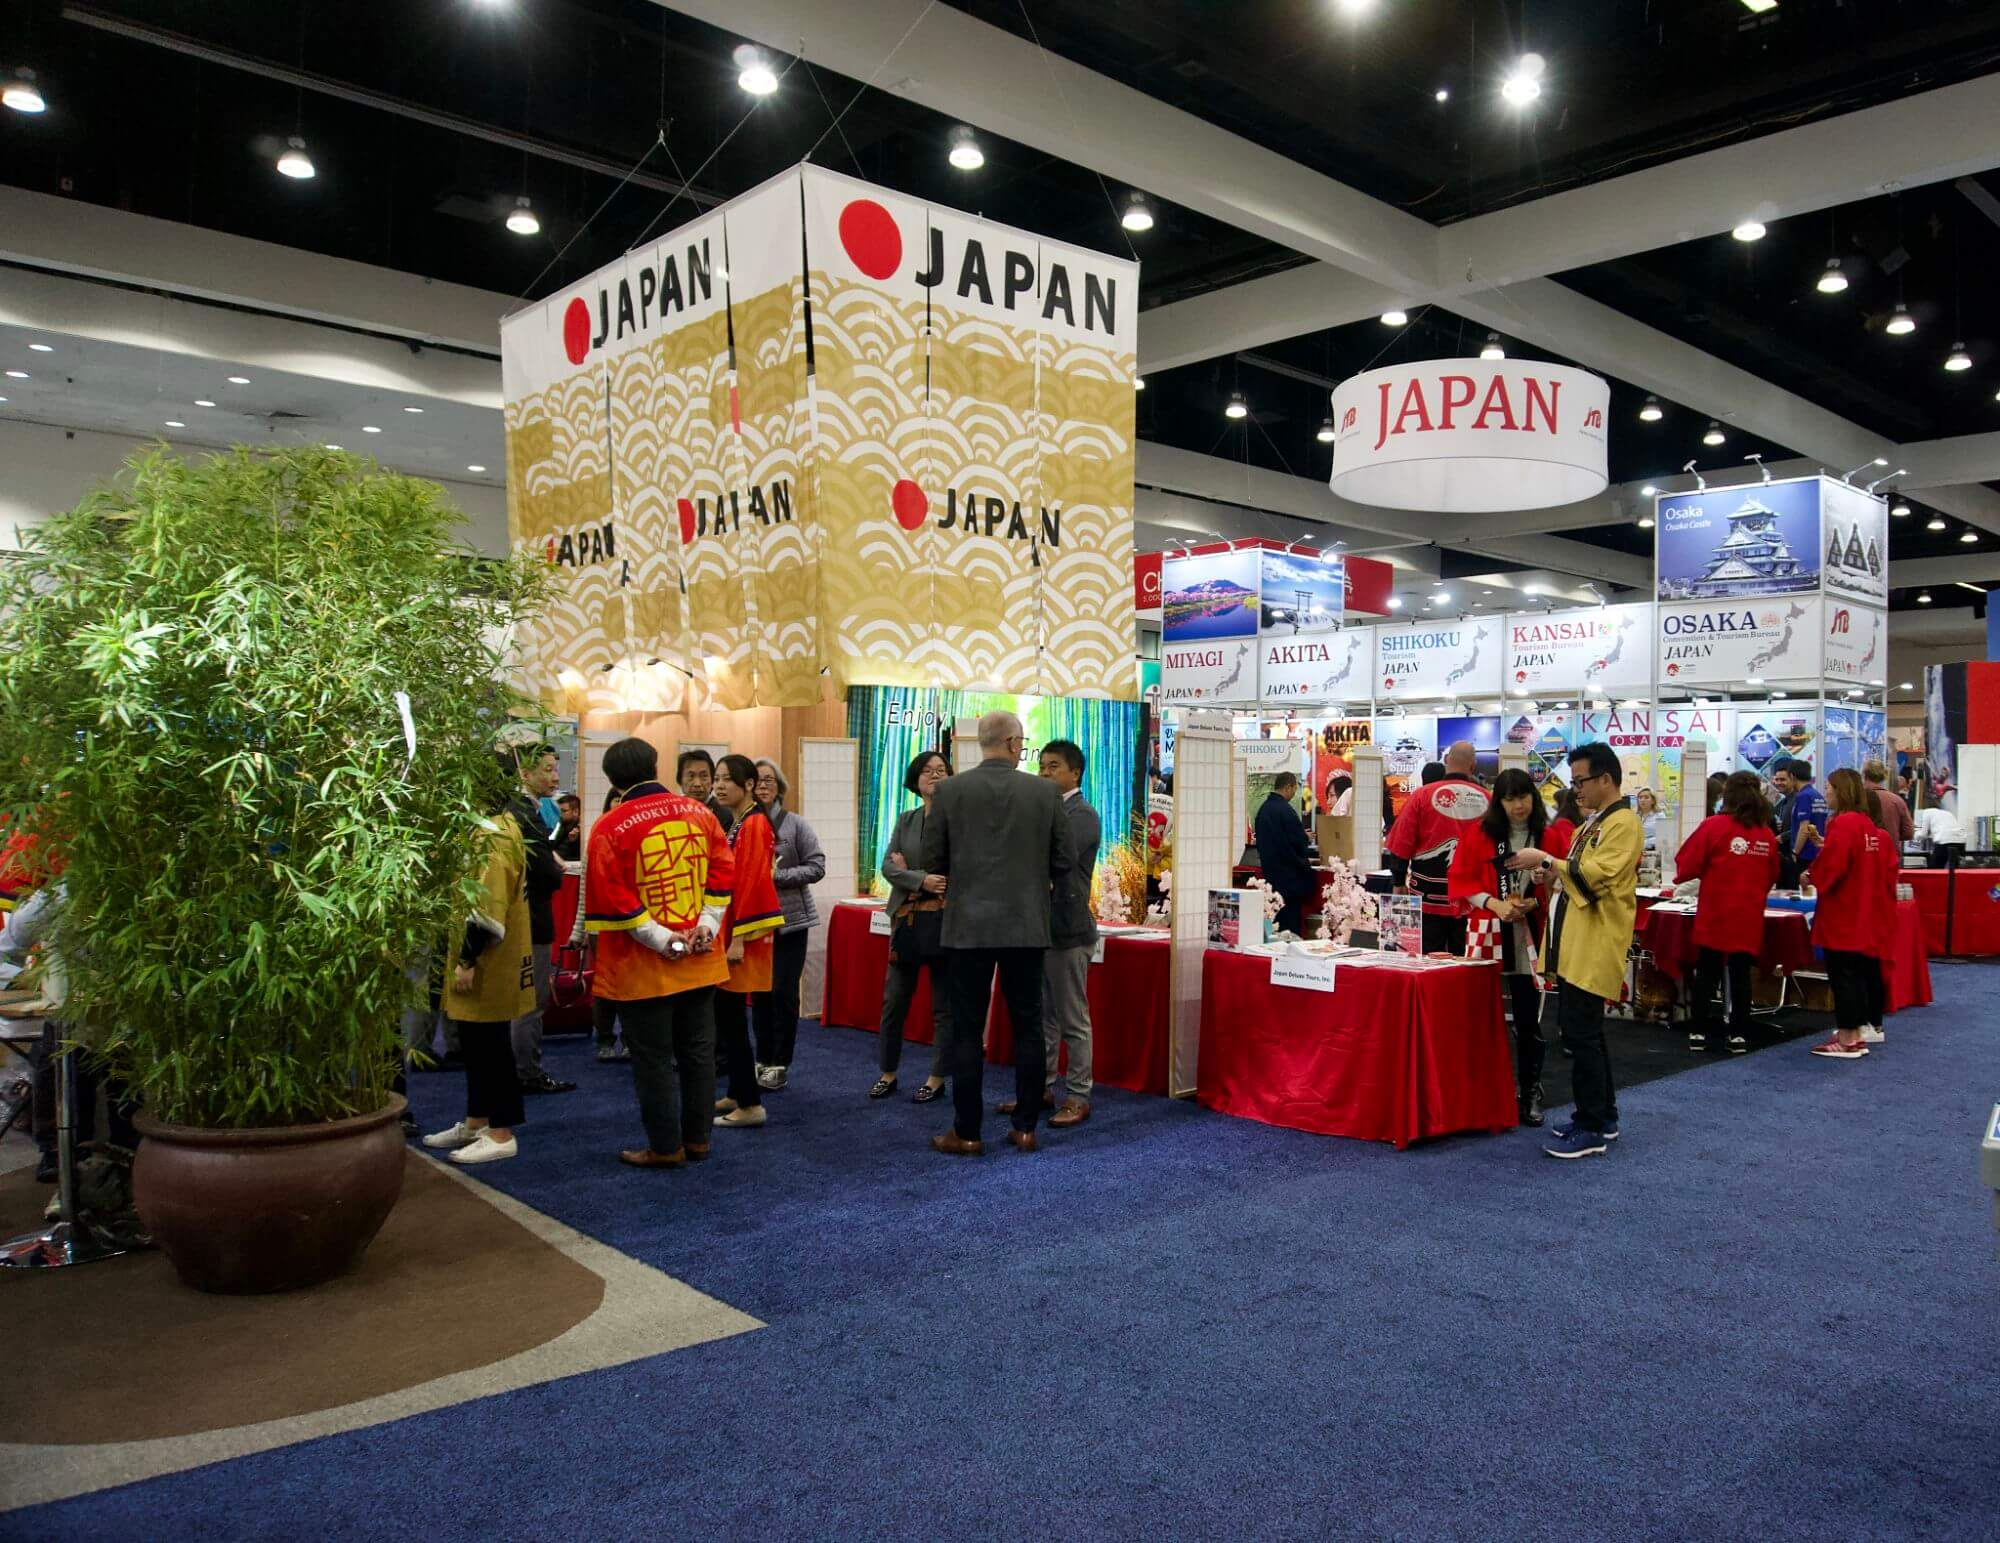 The Japan booth at the Travel and Adventure Show in Los Angeles